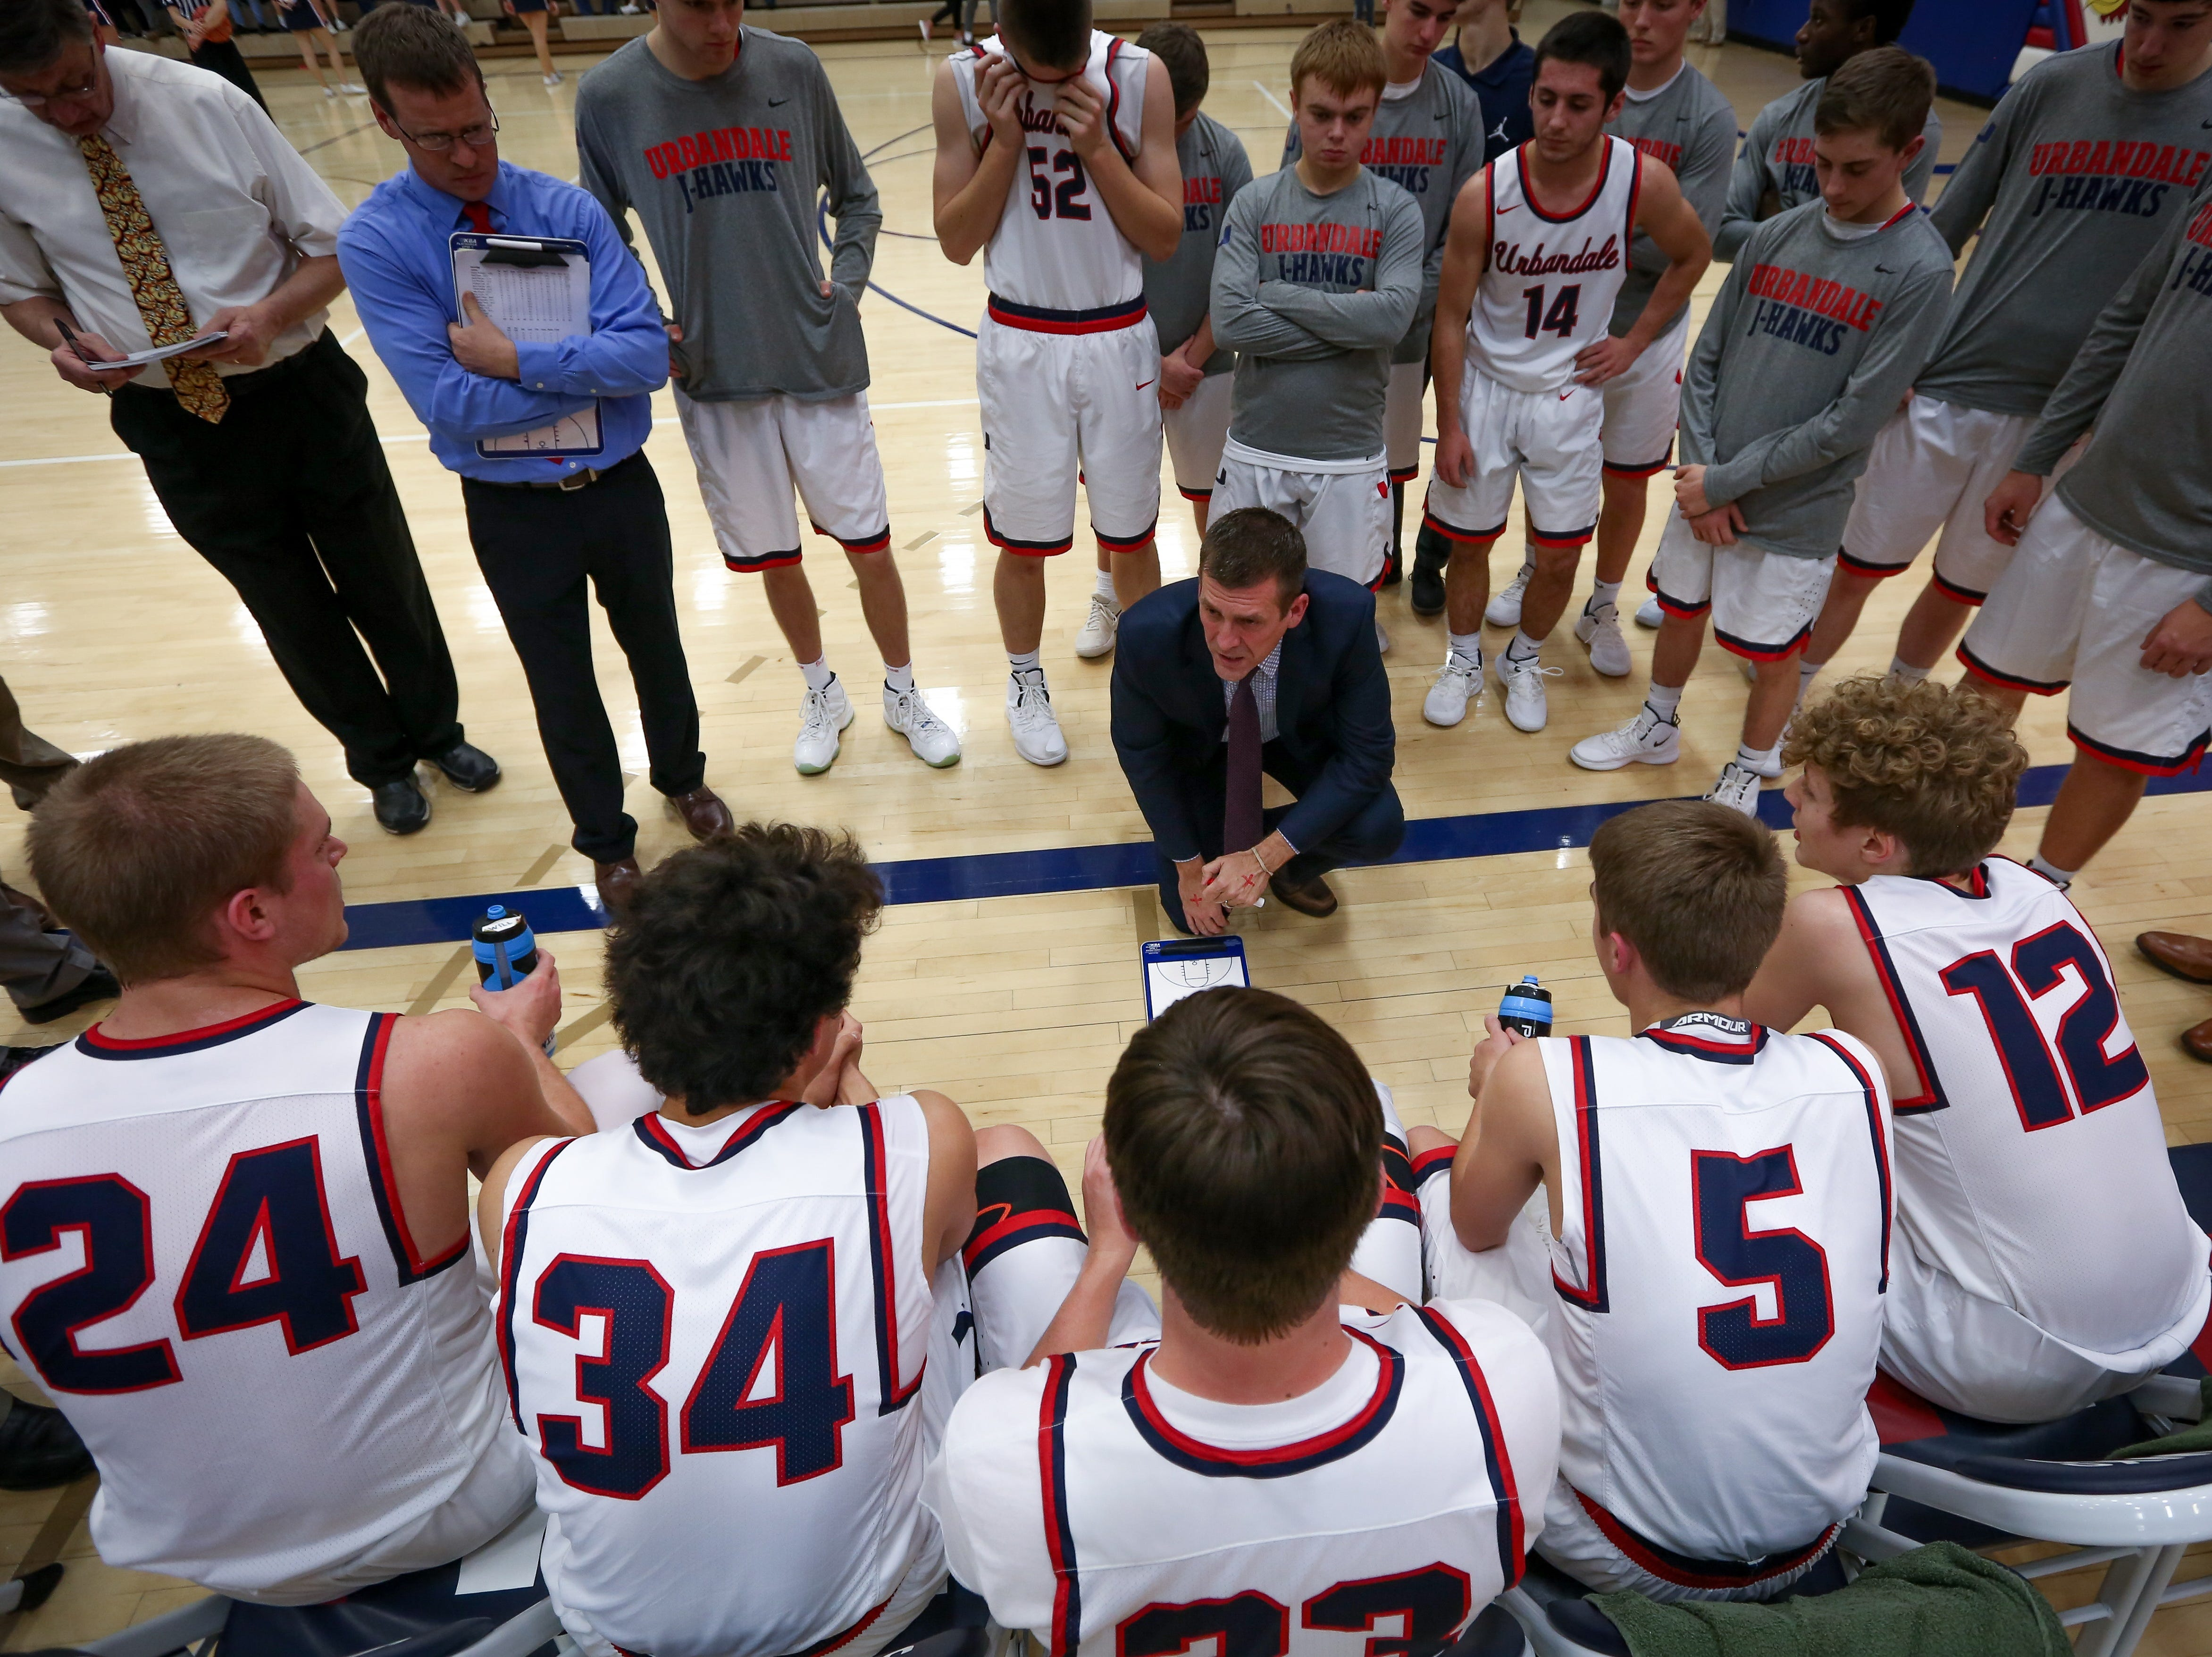 Urbandale head coach Jon Schmitz goes over plays during a timeout in a boys high school basketball game between the Johnston Dragons and the Urbandale J-Hawks at Urbandale High School on Dec. 18, 2018 in Urbandale, Iowa.